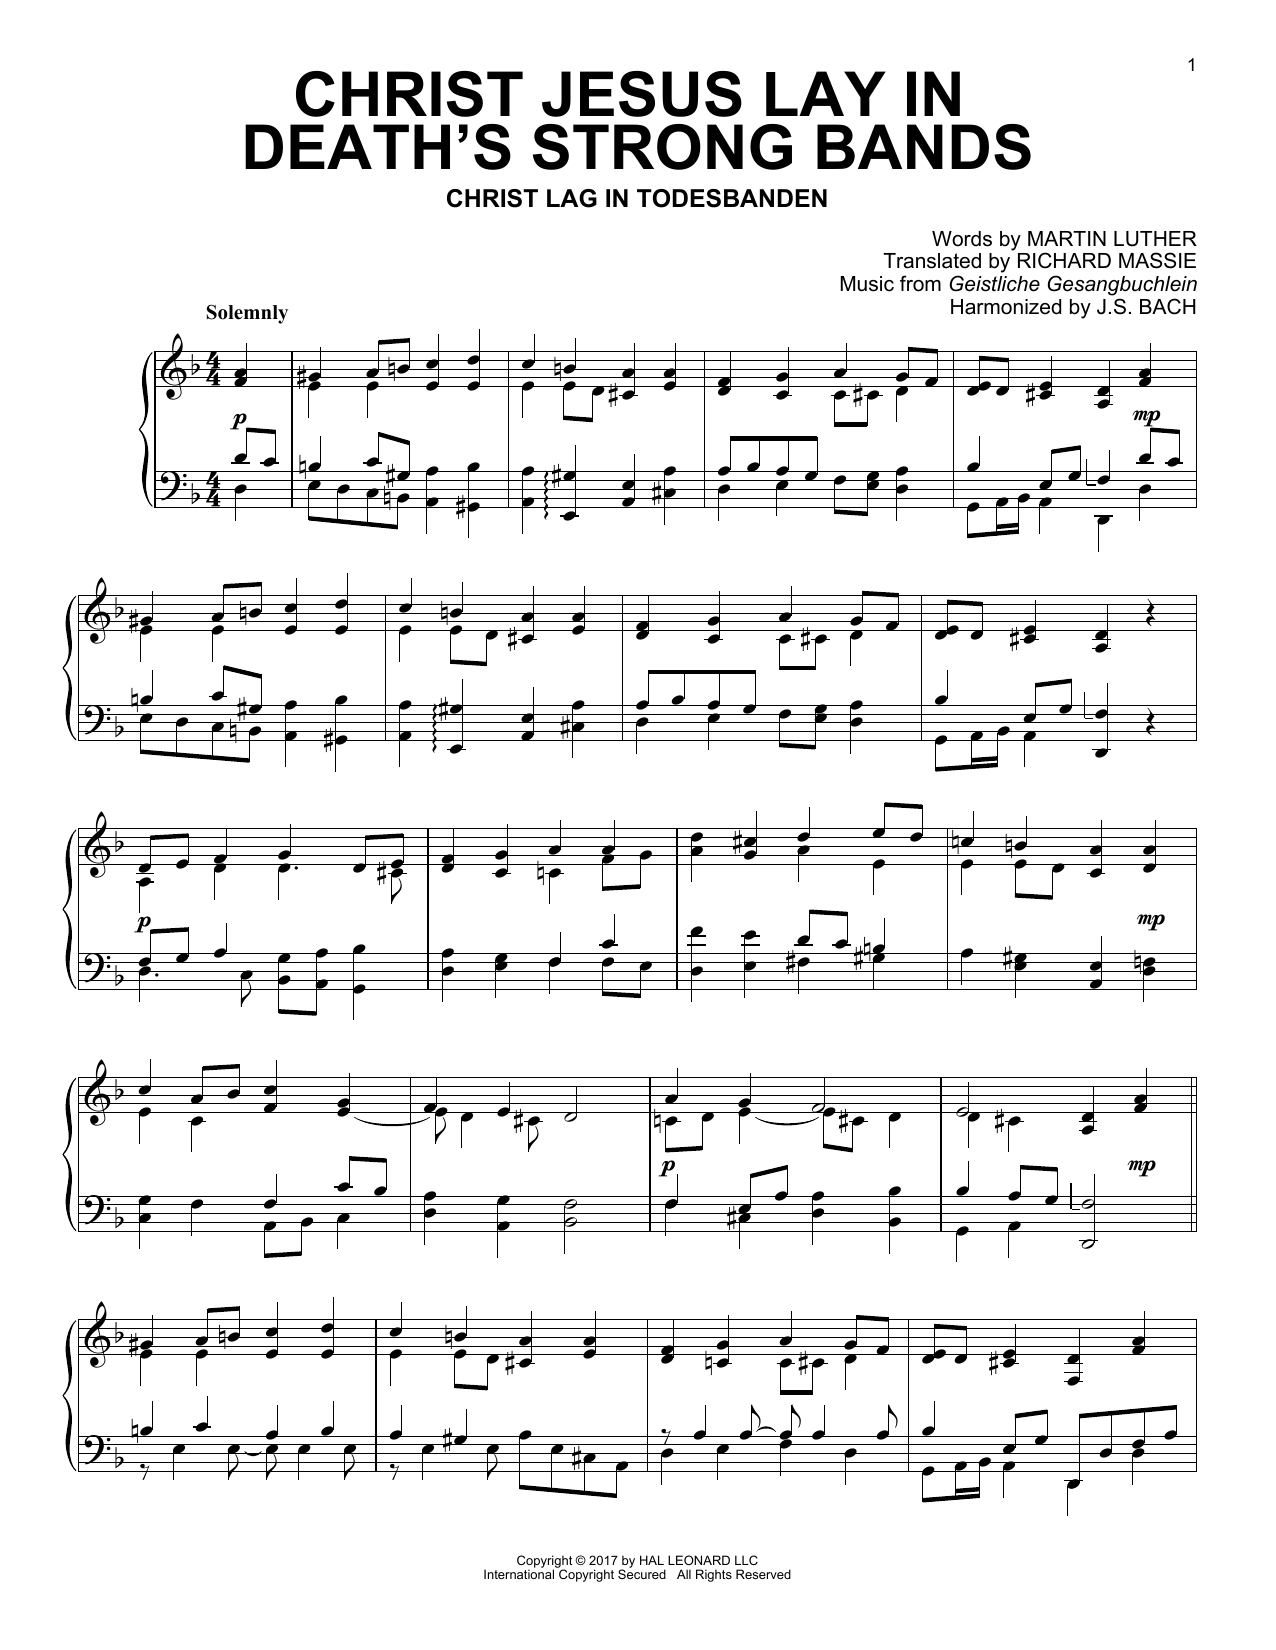 Geistliche Gesangbuchlein Christ Jesus Lay In Death's Strong Bands sheet music notes and chords. Download Printable PDF.